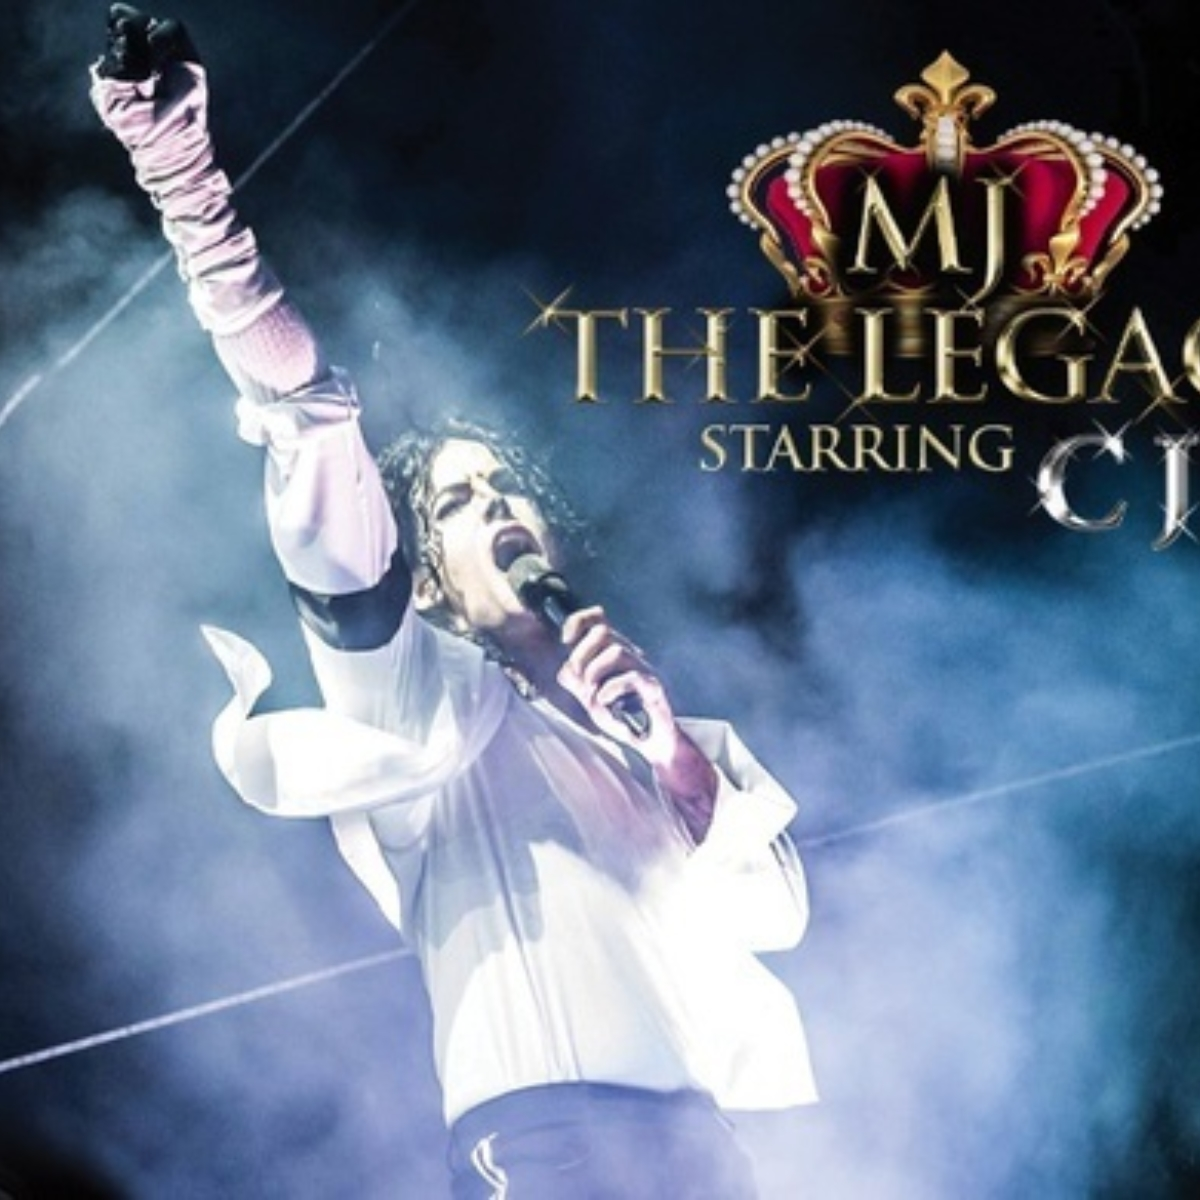 Michael Jackson The Legacy - Starring CJ Images